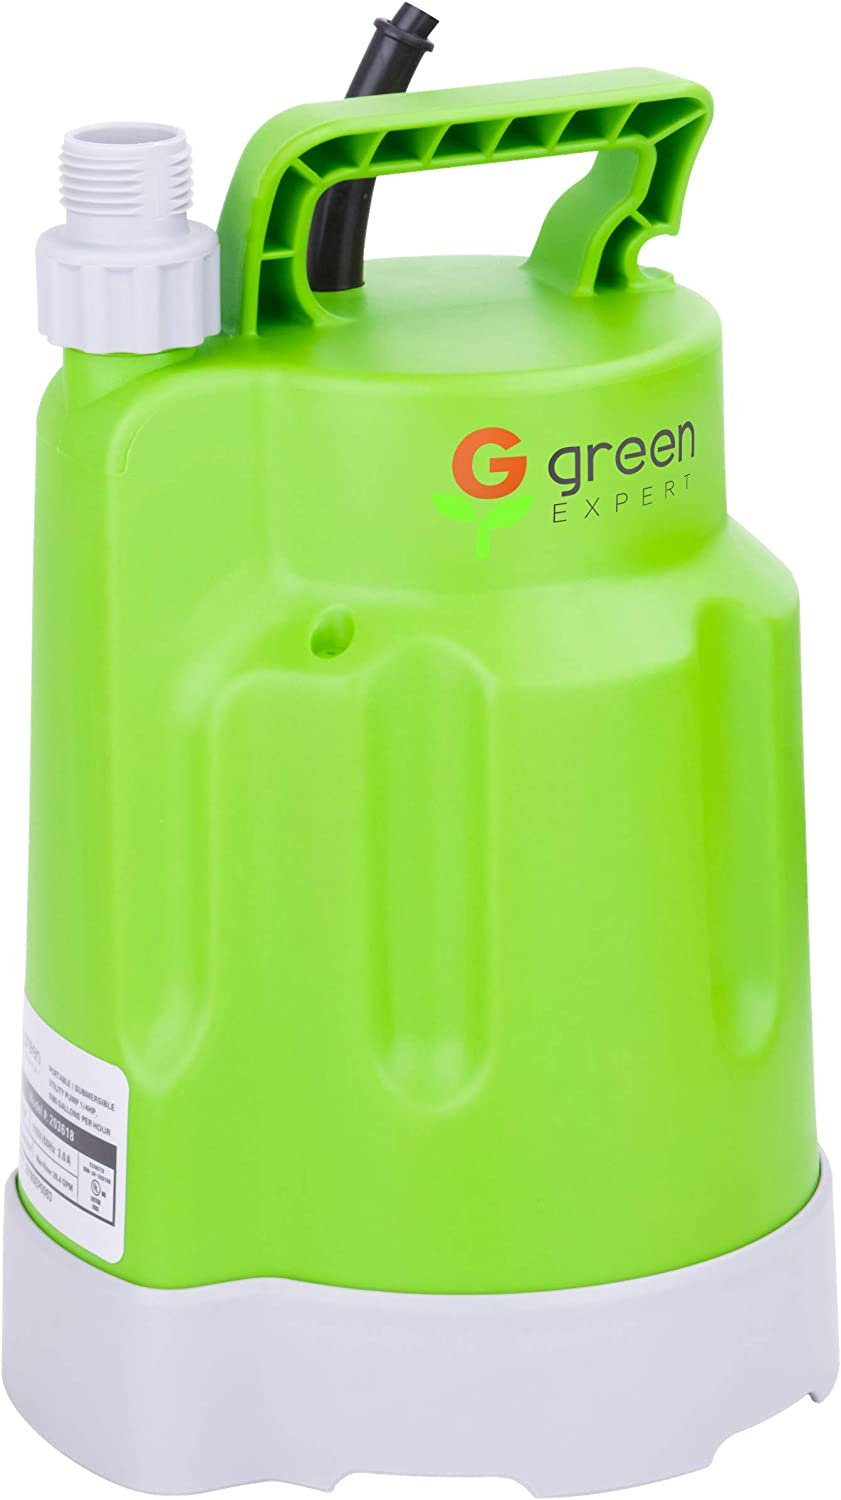 Green Expert 203618 1/4HP Submersible Utility Pump